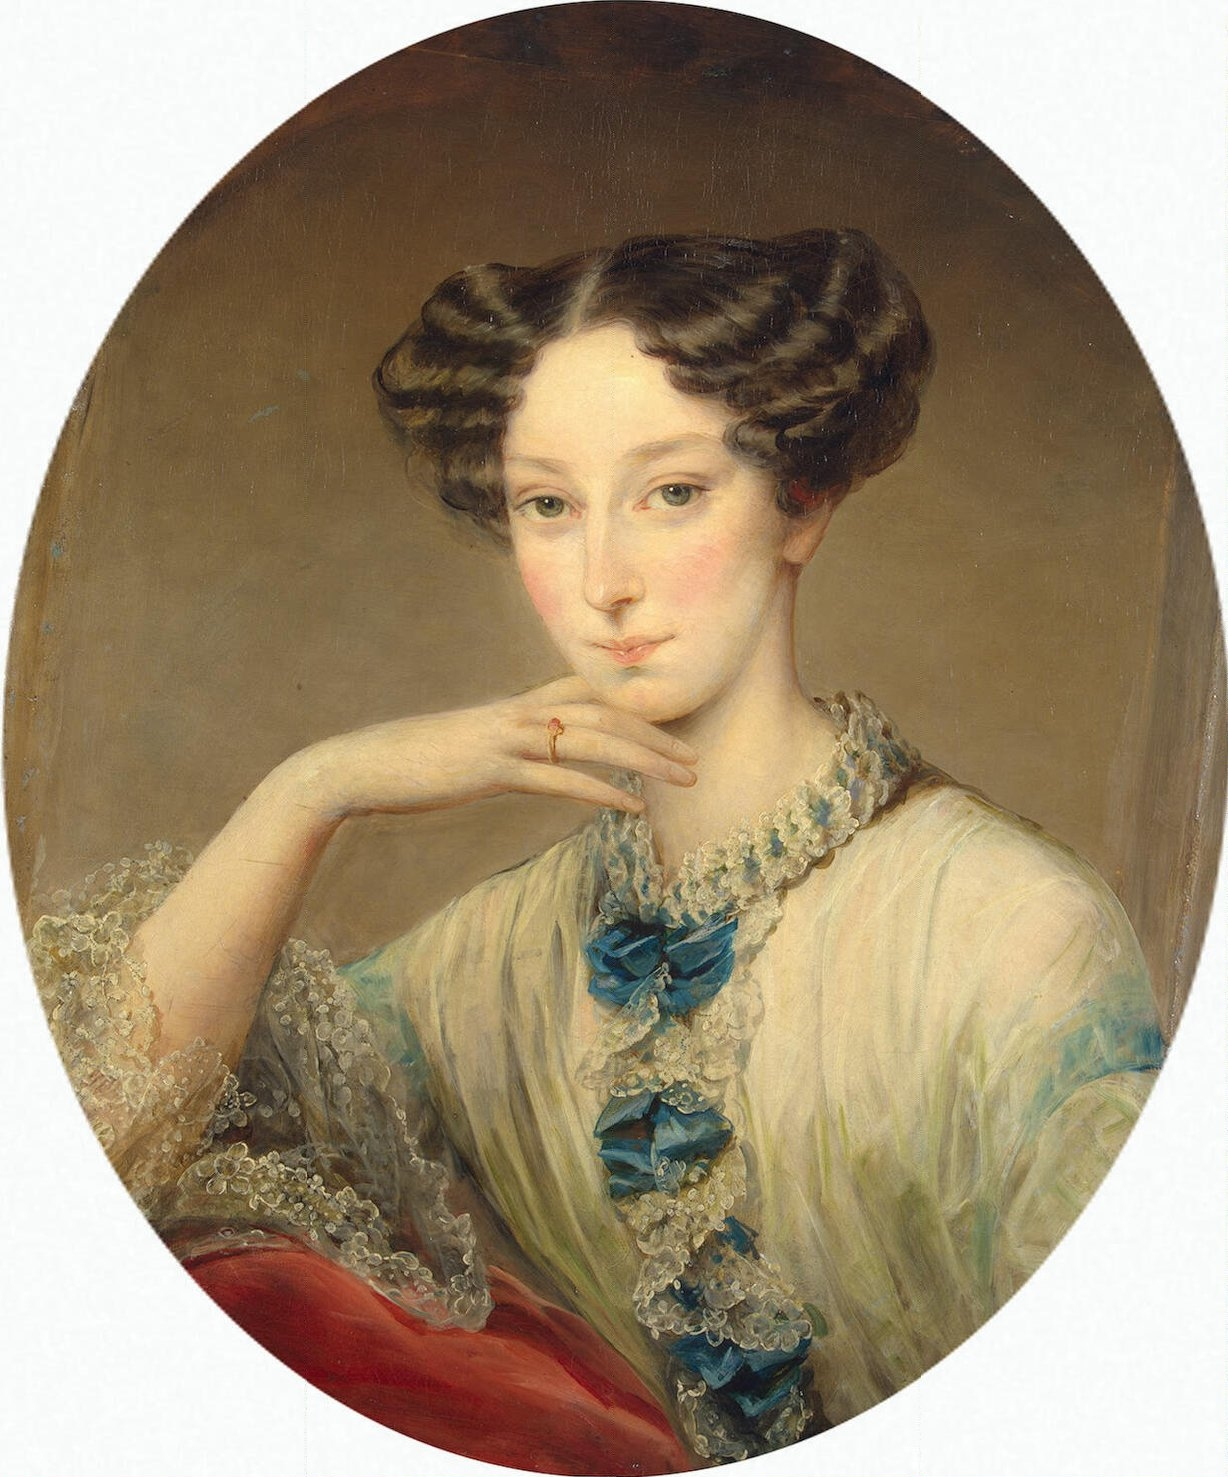 Portrait of Grand Duchess Maria Alexandrovna